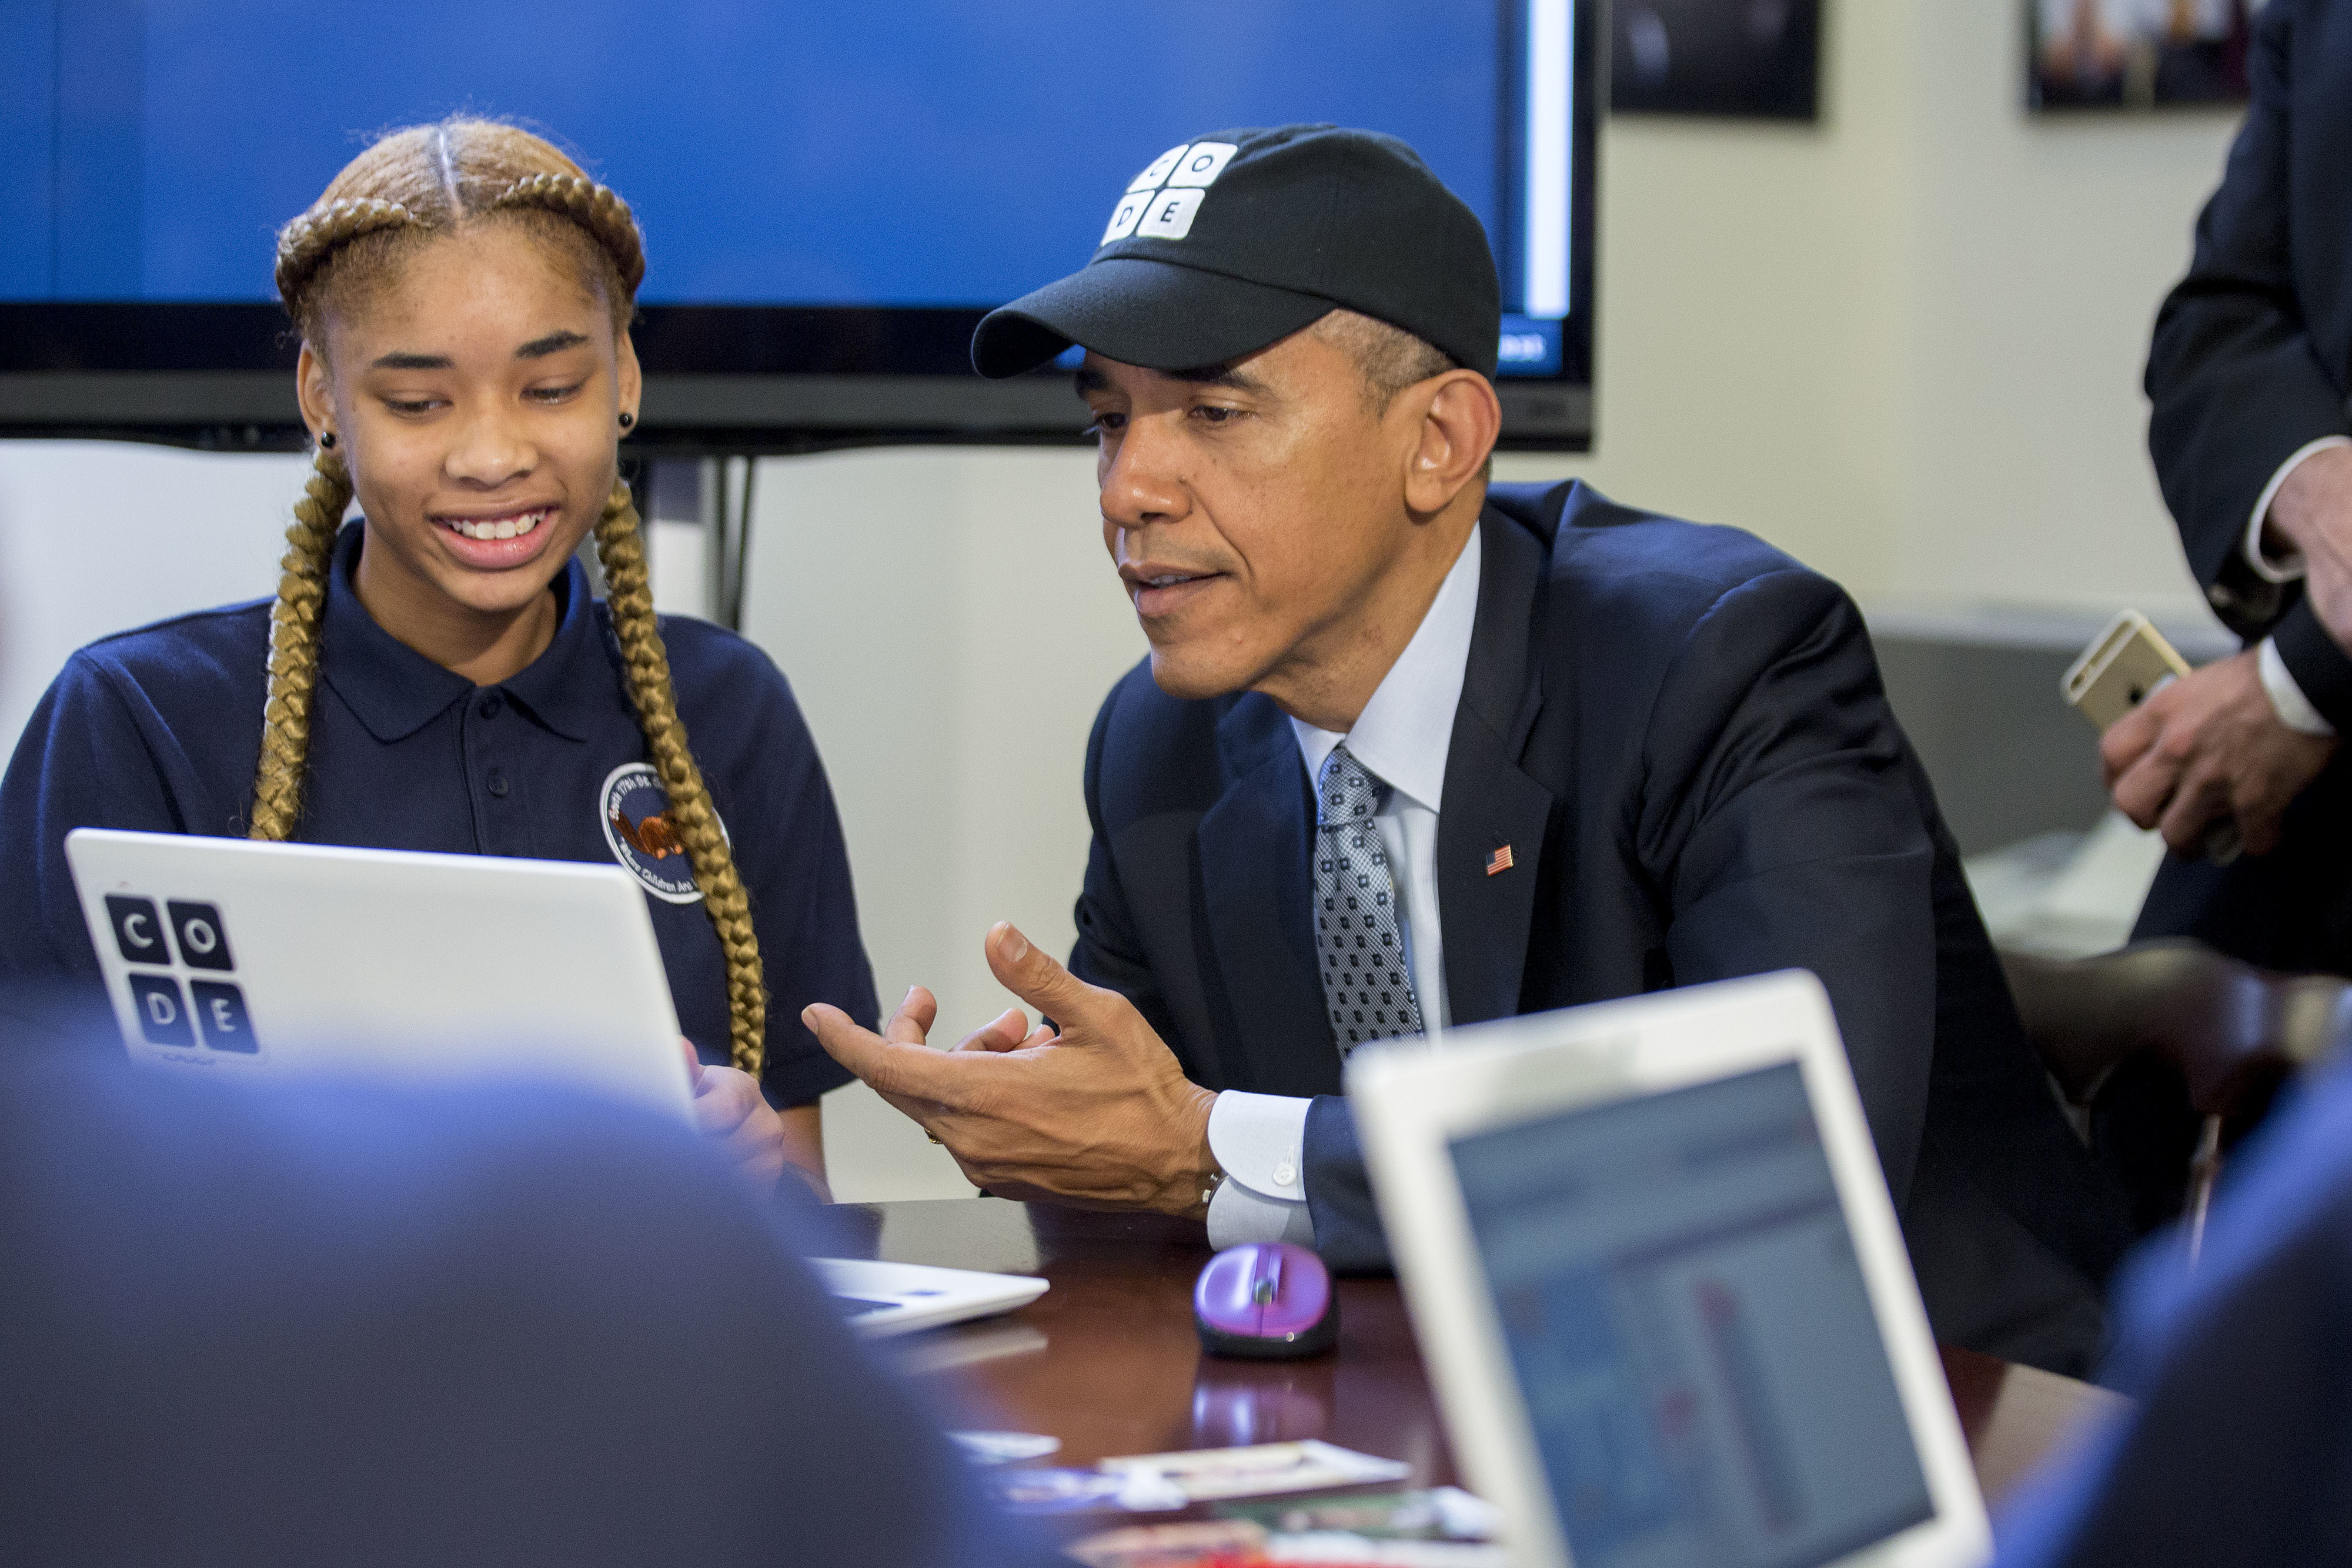 Obama looking at a computer, a crucial tool in the digital media world.